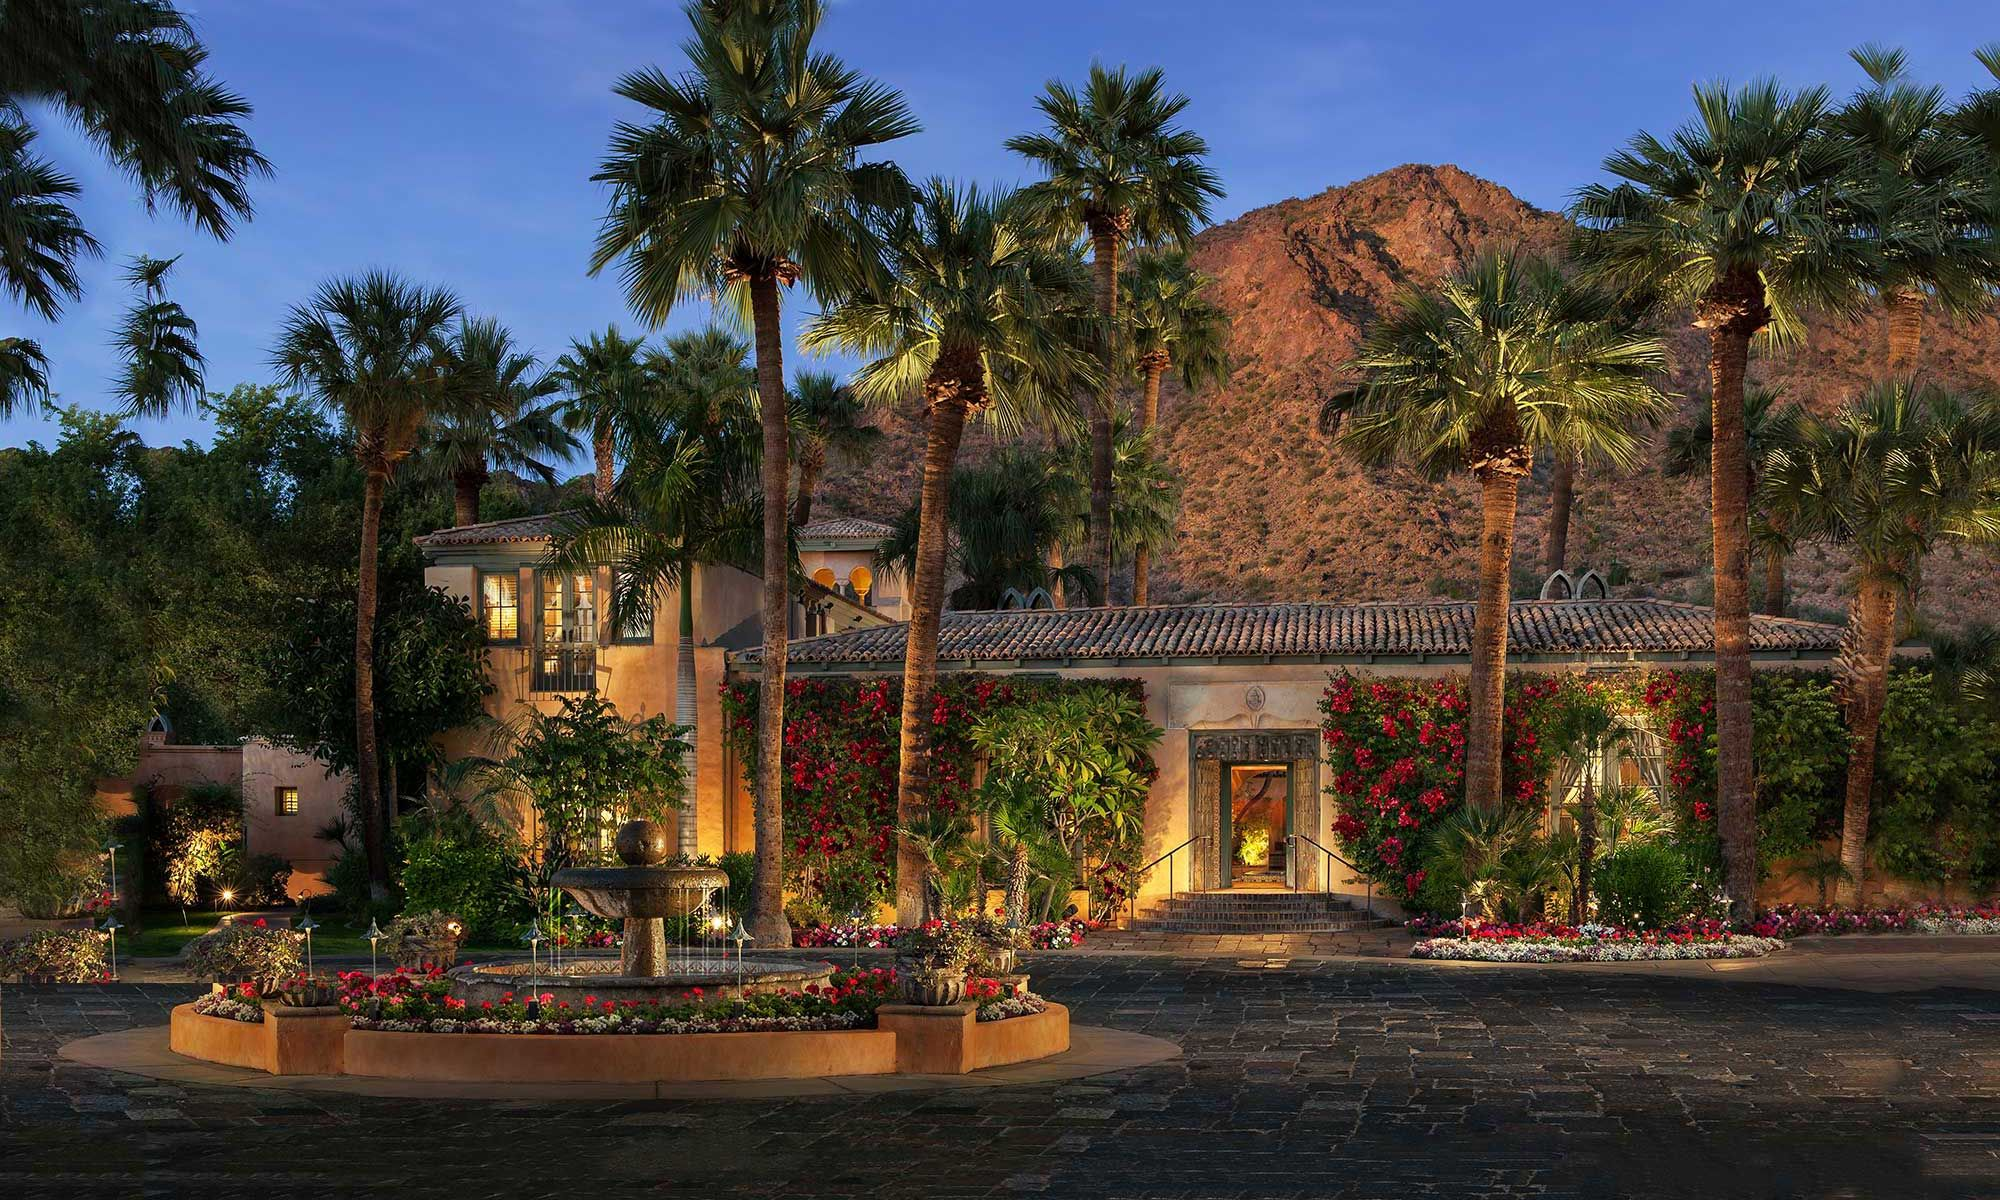 royal palms resort and spa (phoenix, az) - built in 1929, this